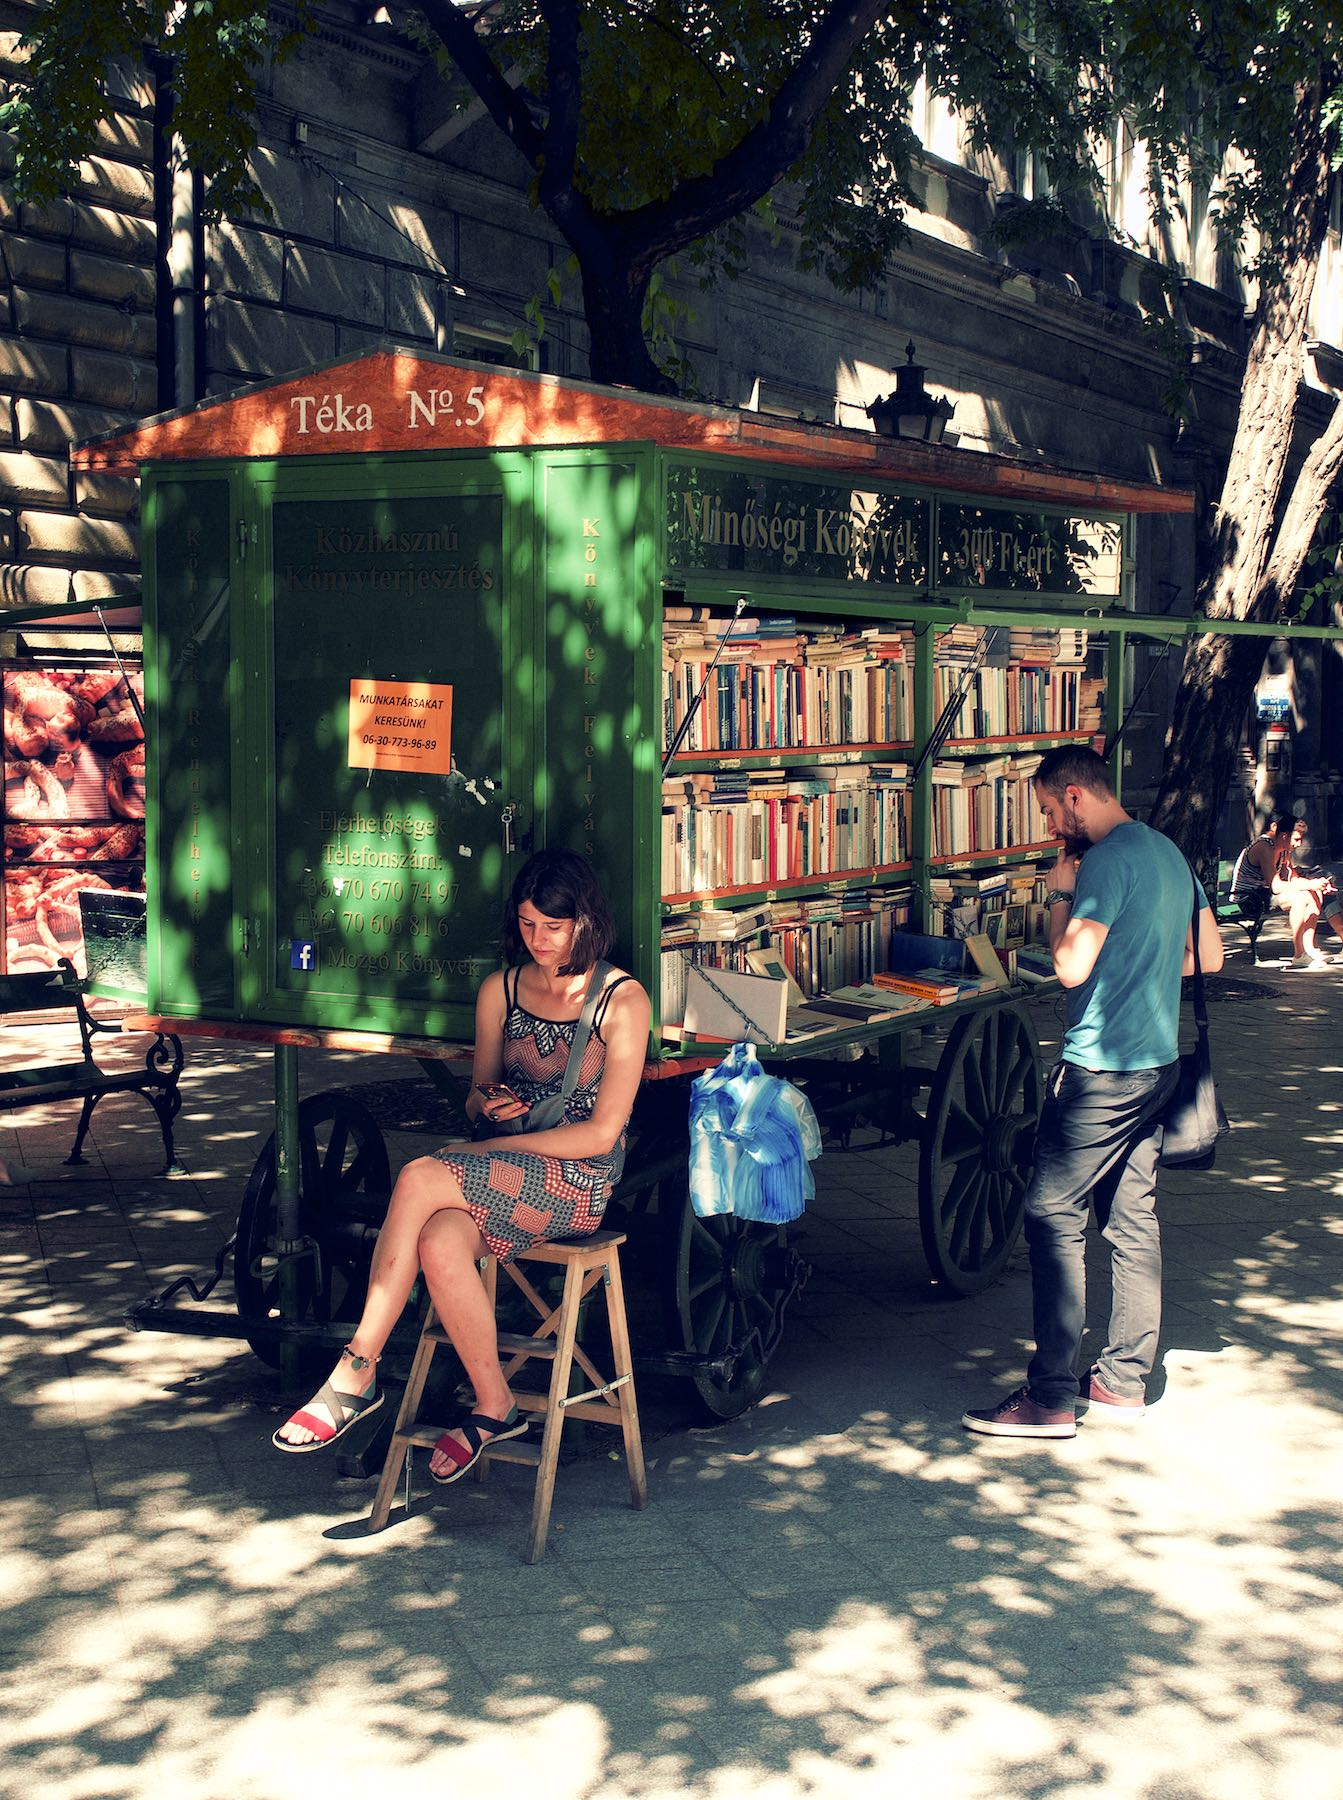 Movable Book Store